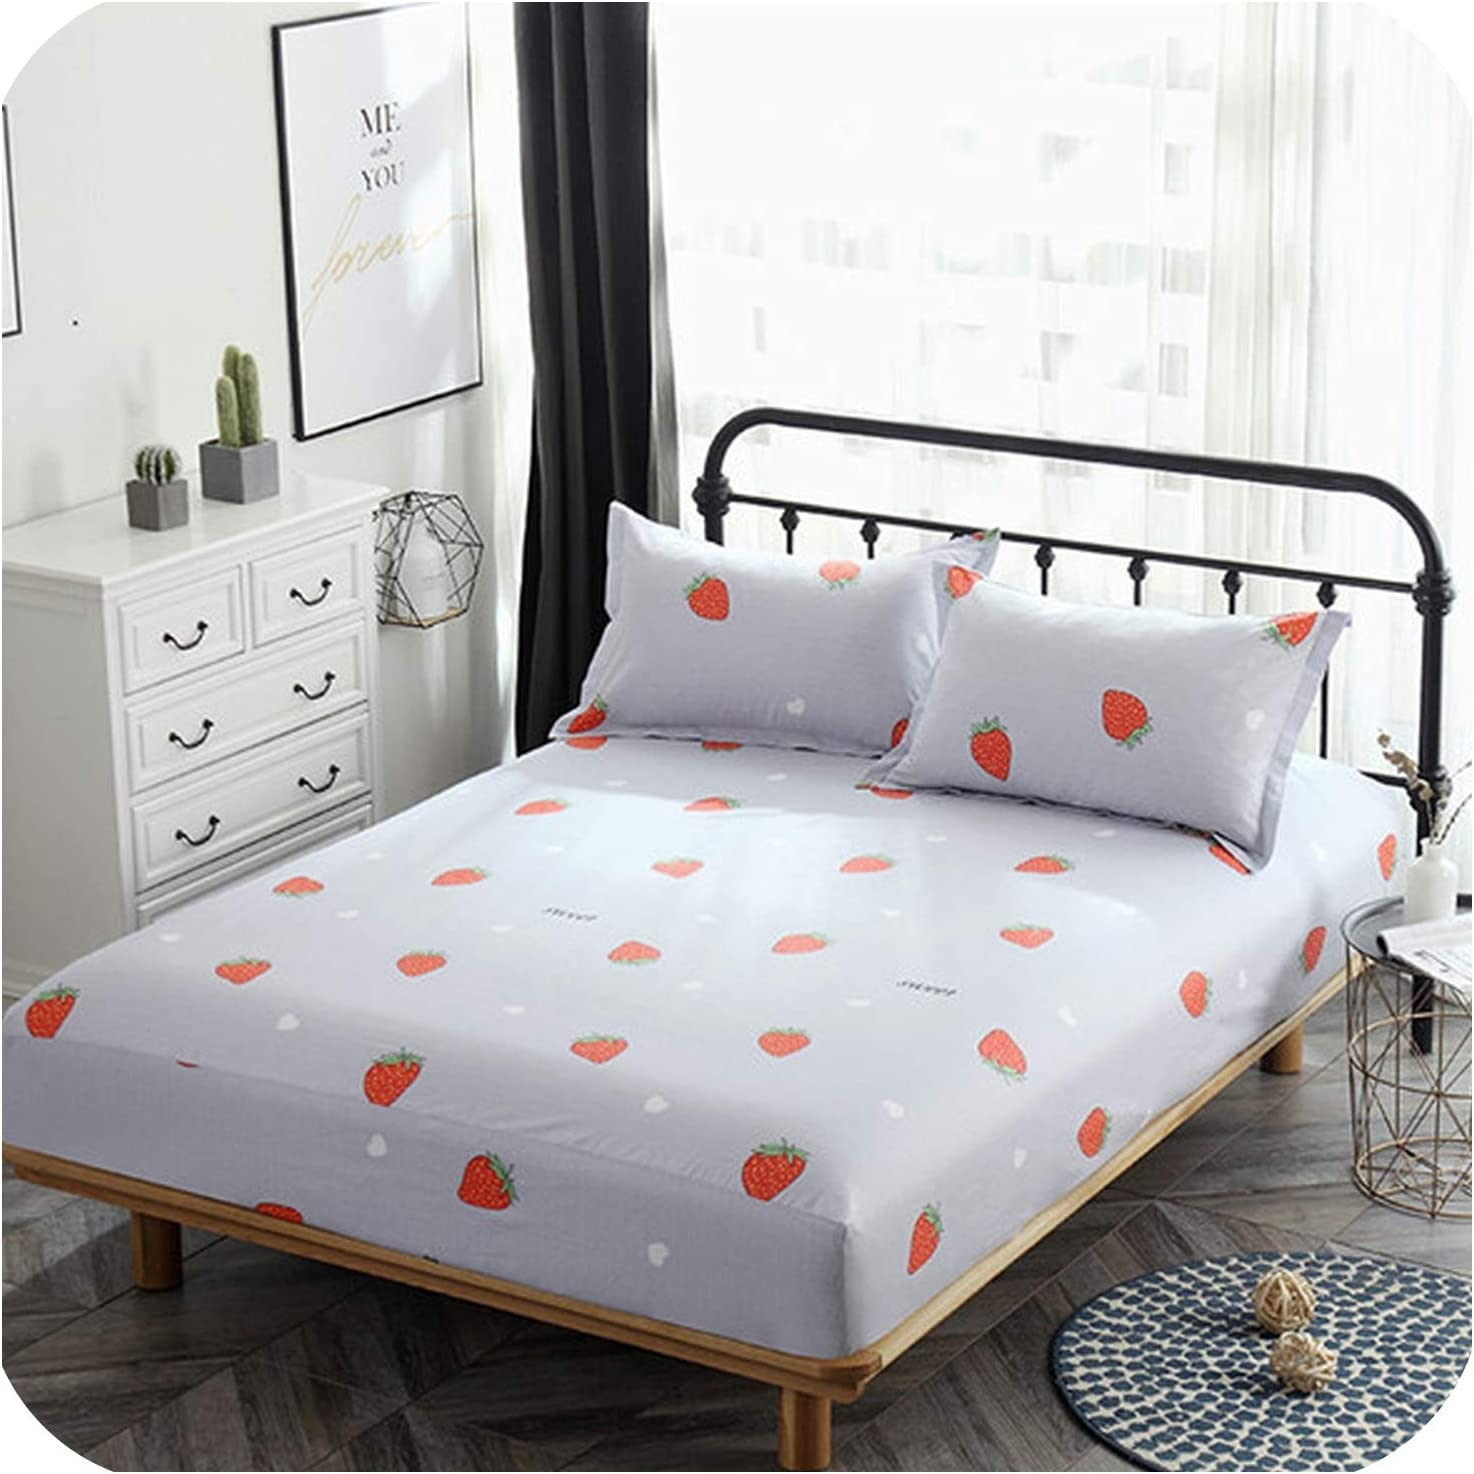 Home Bedroom Decors Bed Fitted Elastic Sheets Single Double King Bedding Cover